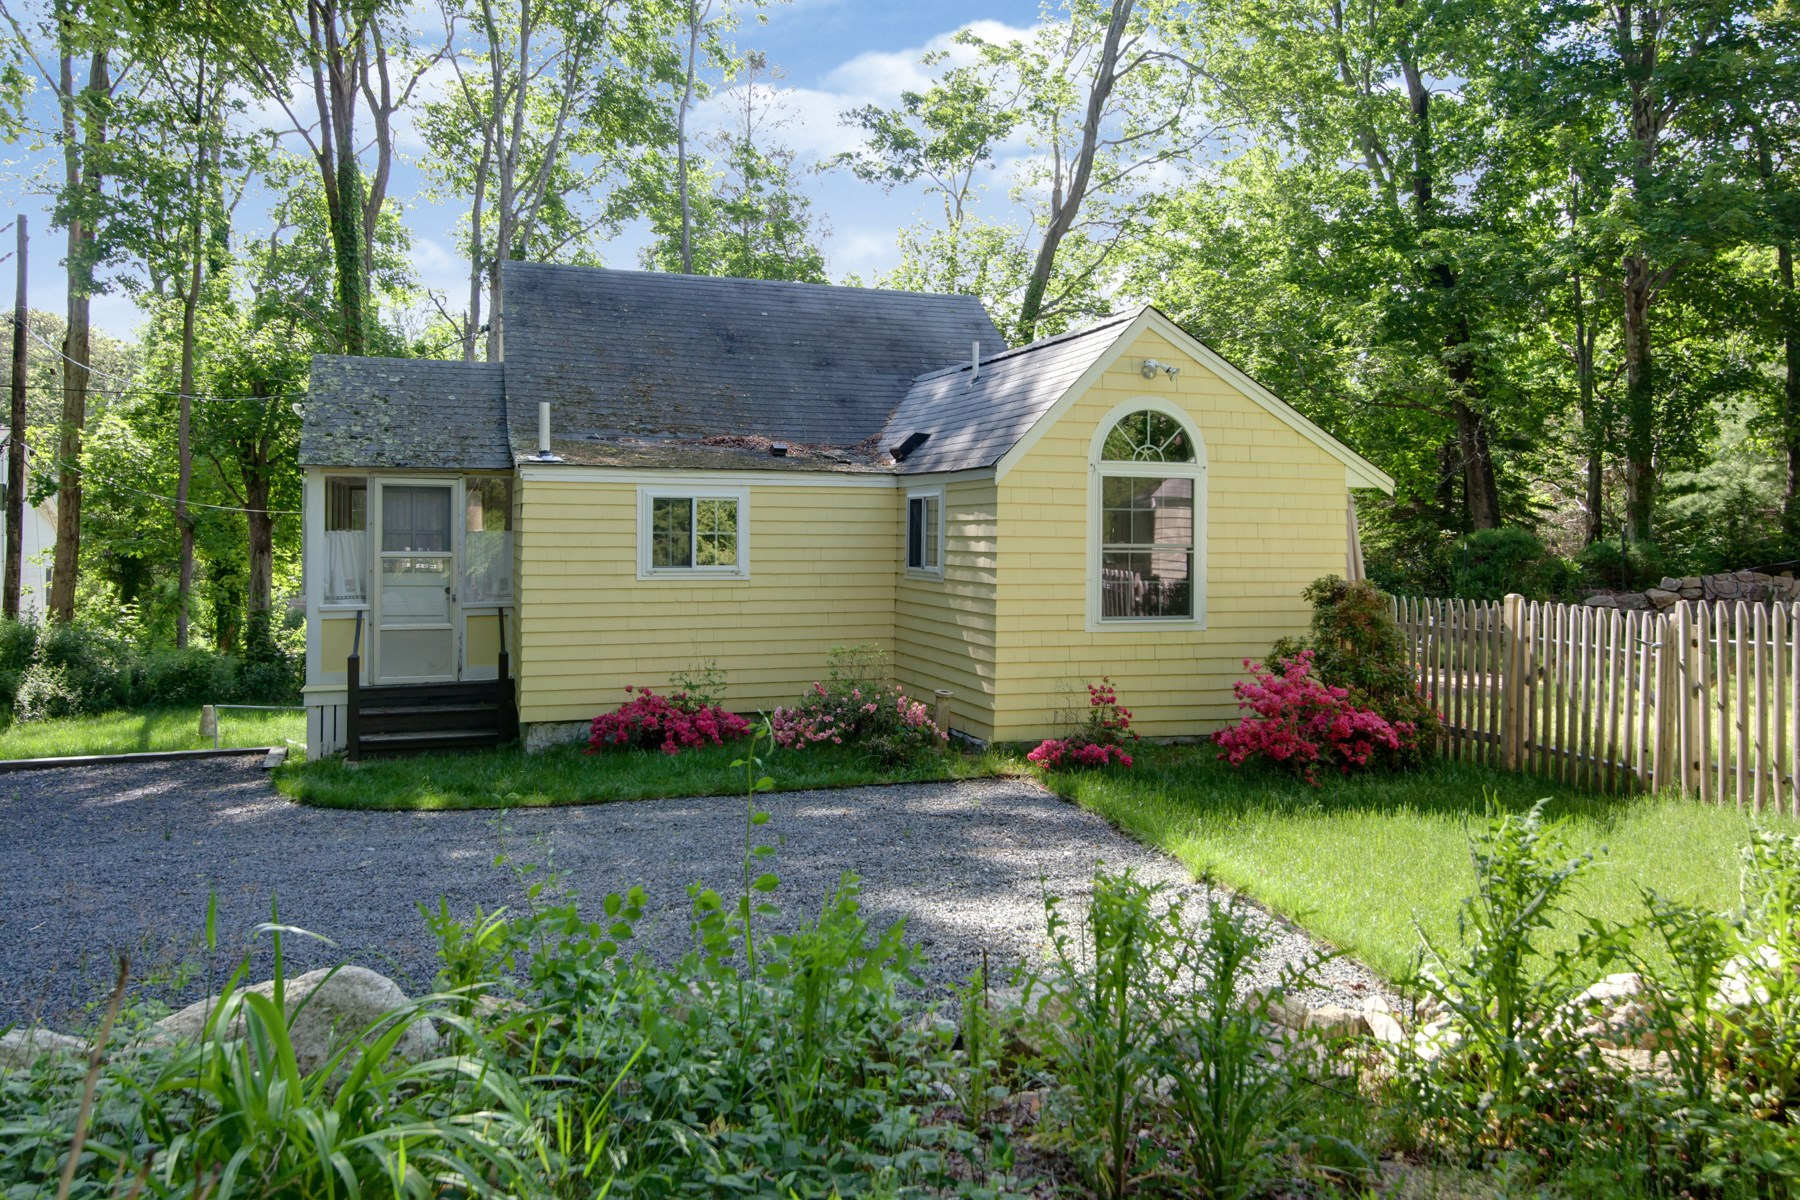 Single Family Home for Sale at Heart of West Falmouth Village 14 Stagecoach Way West Falmouth, Massachusetts, 02574 United States